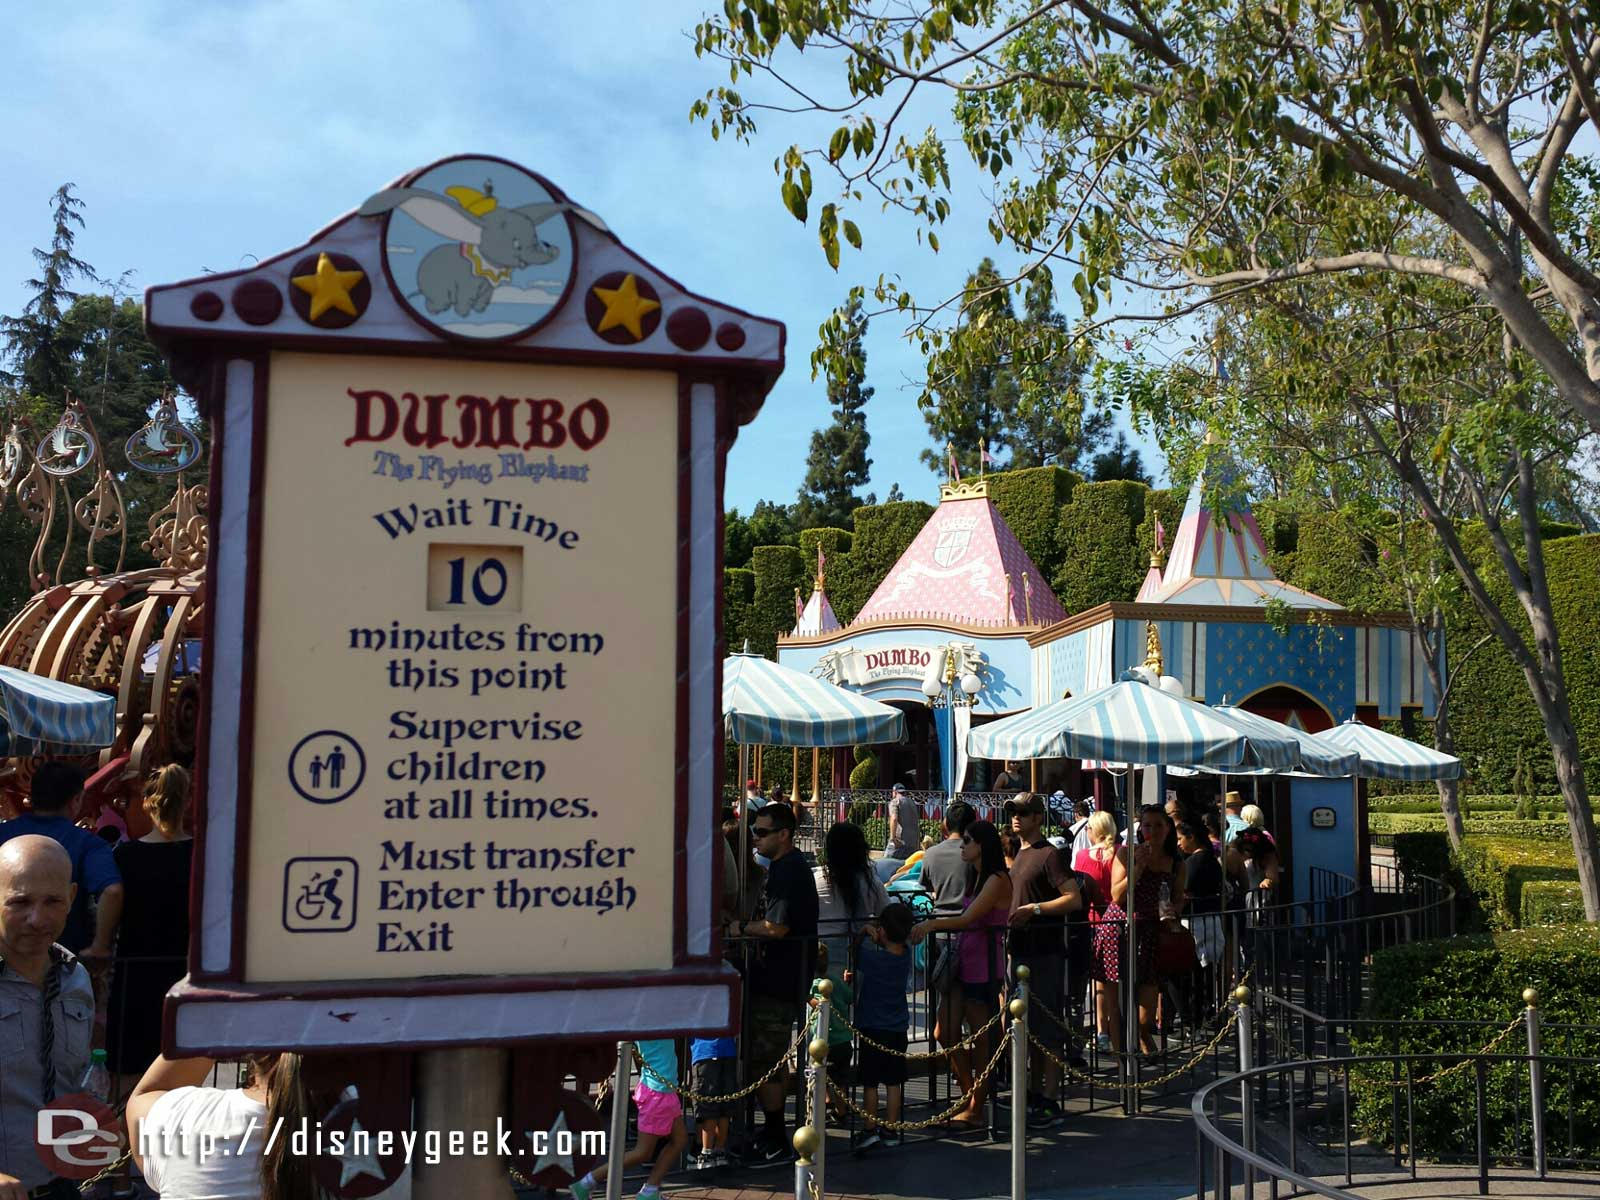 Dumbo is only a 10 min wait this afternoon #Disneyland